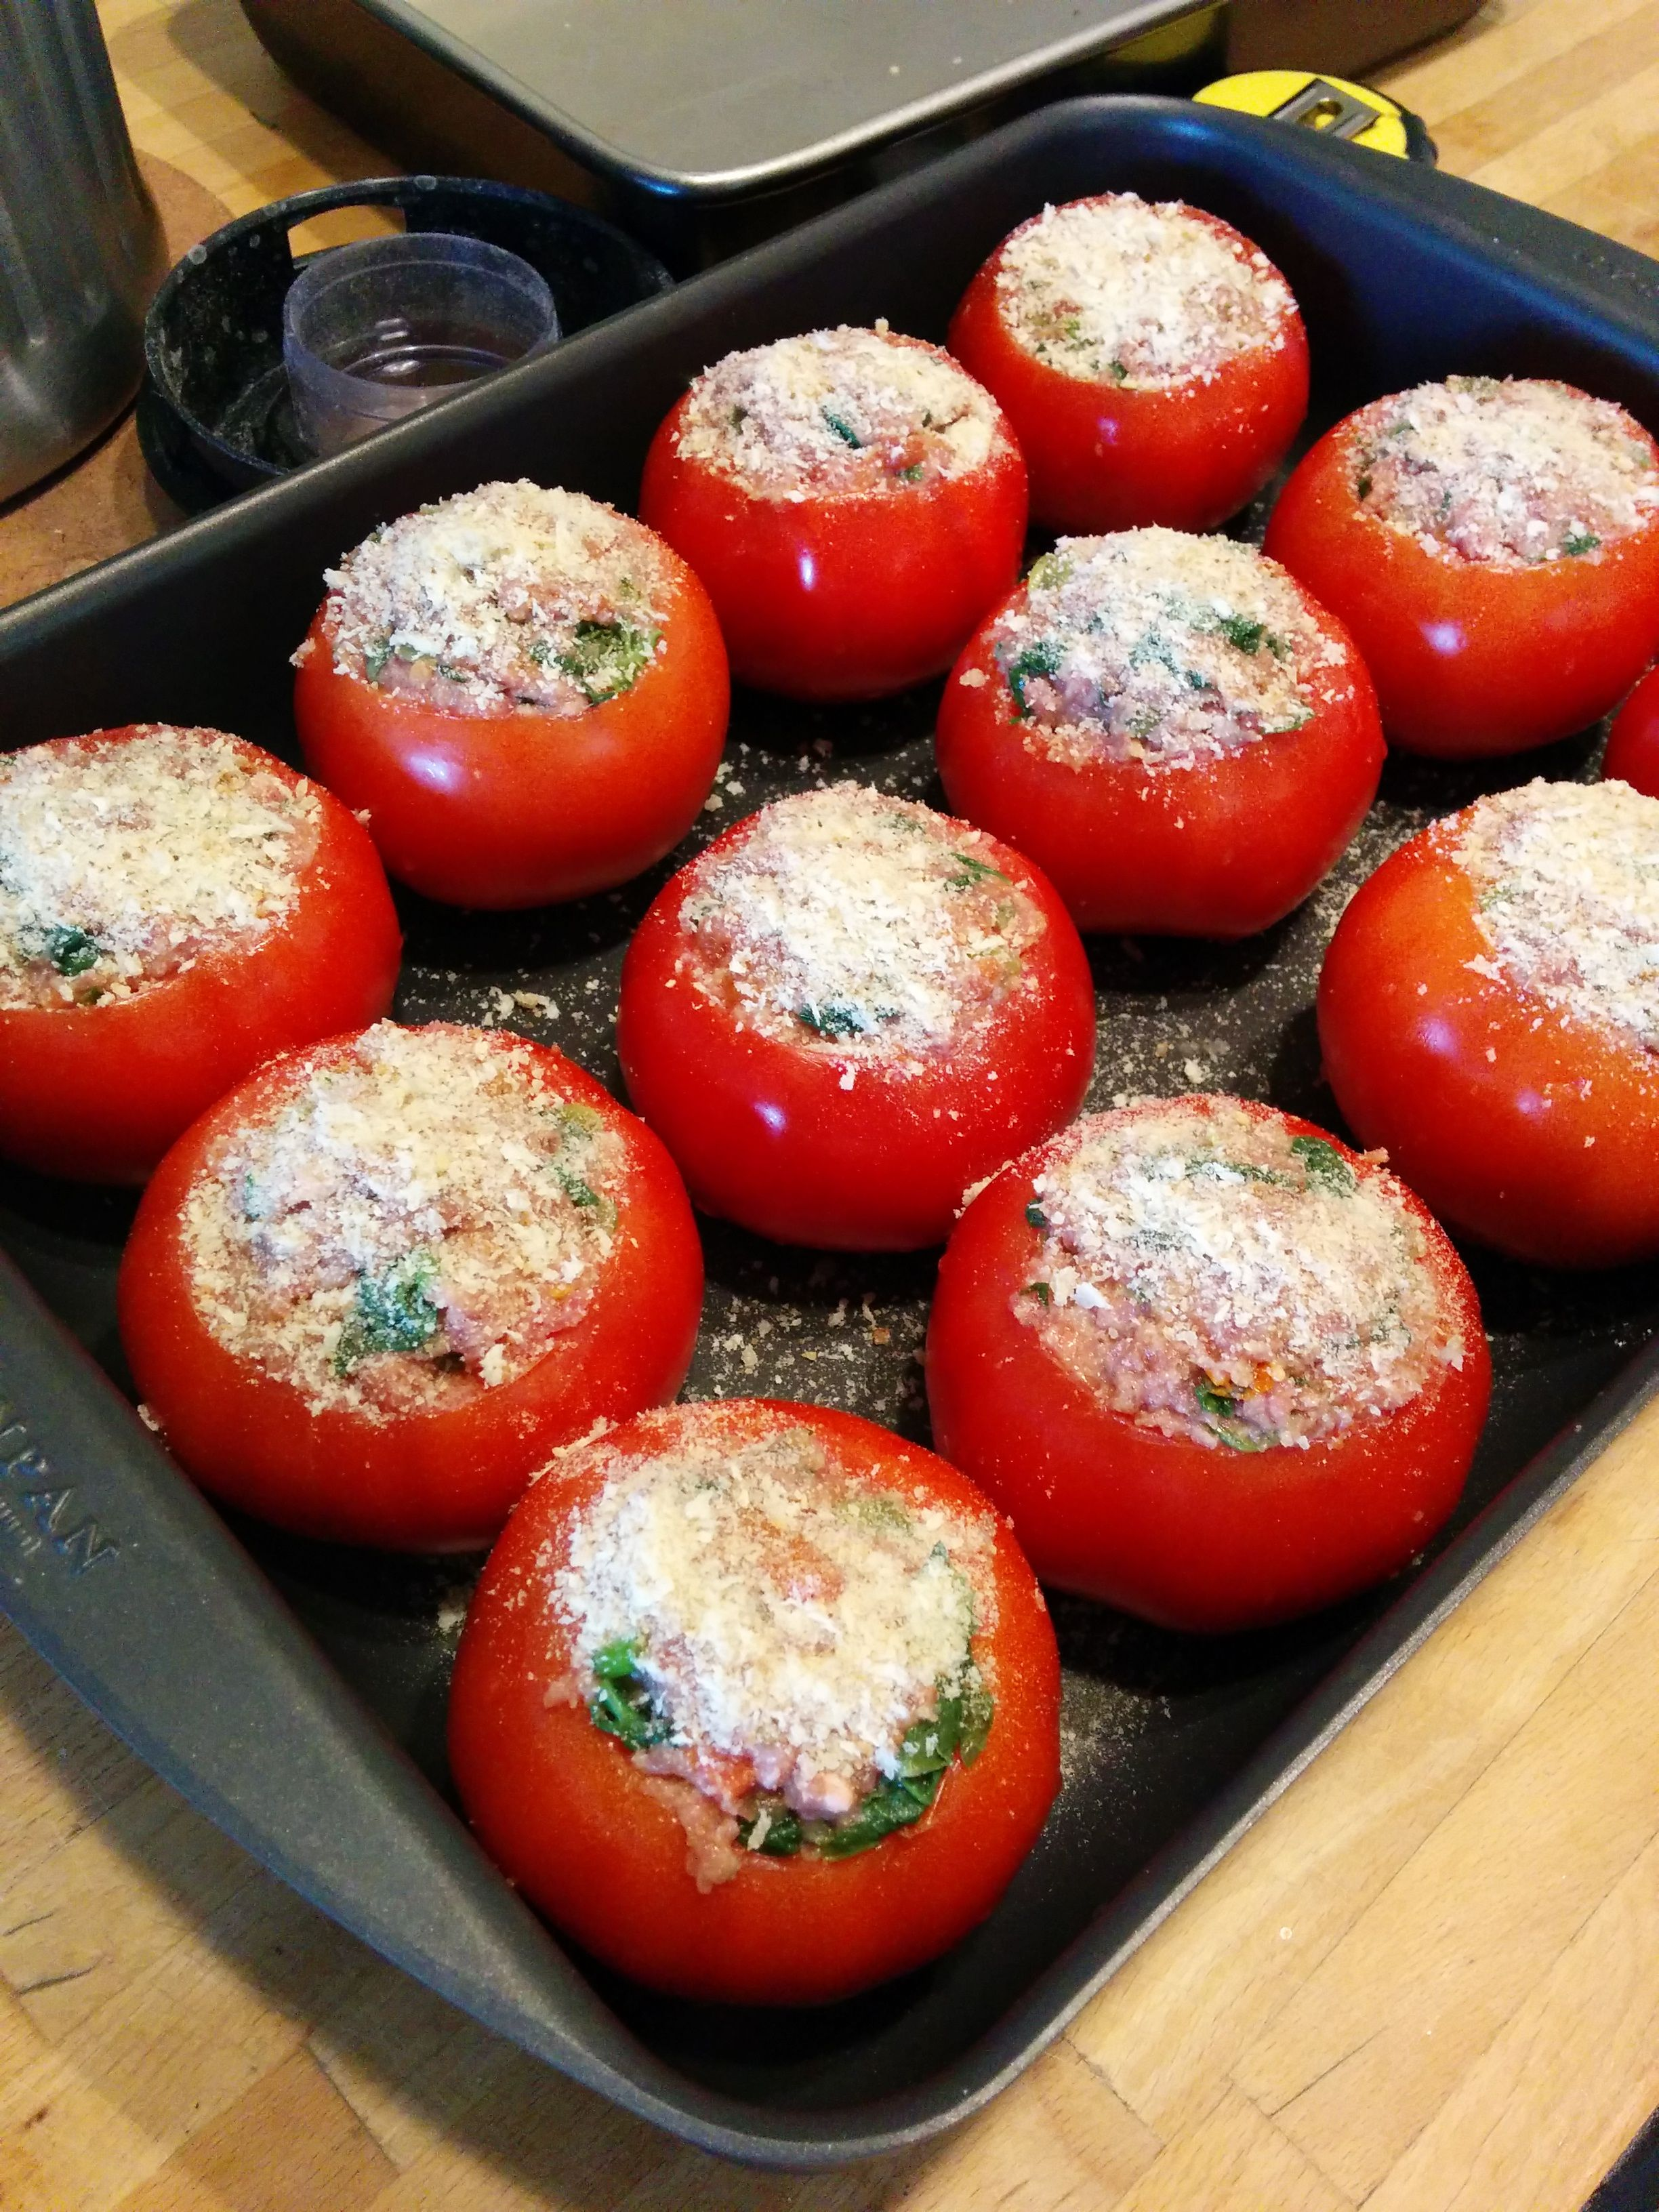 Stuffed Tomatoes Ready To Go In The Oven Unfortunately I Forgot To Take A Photo After Cooking Cooking Food Tomato